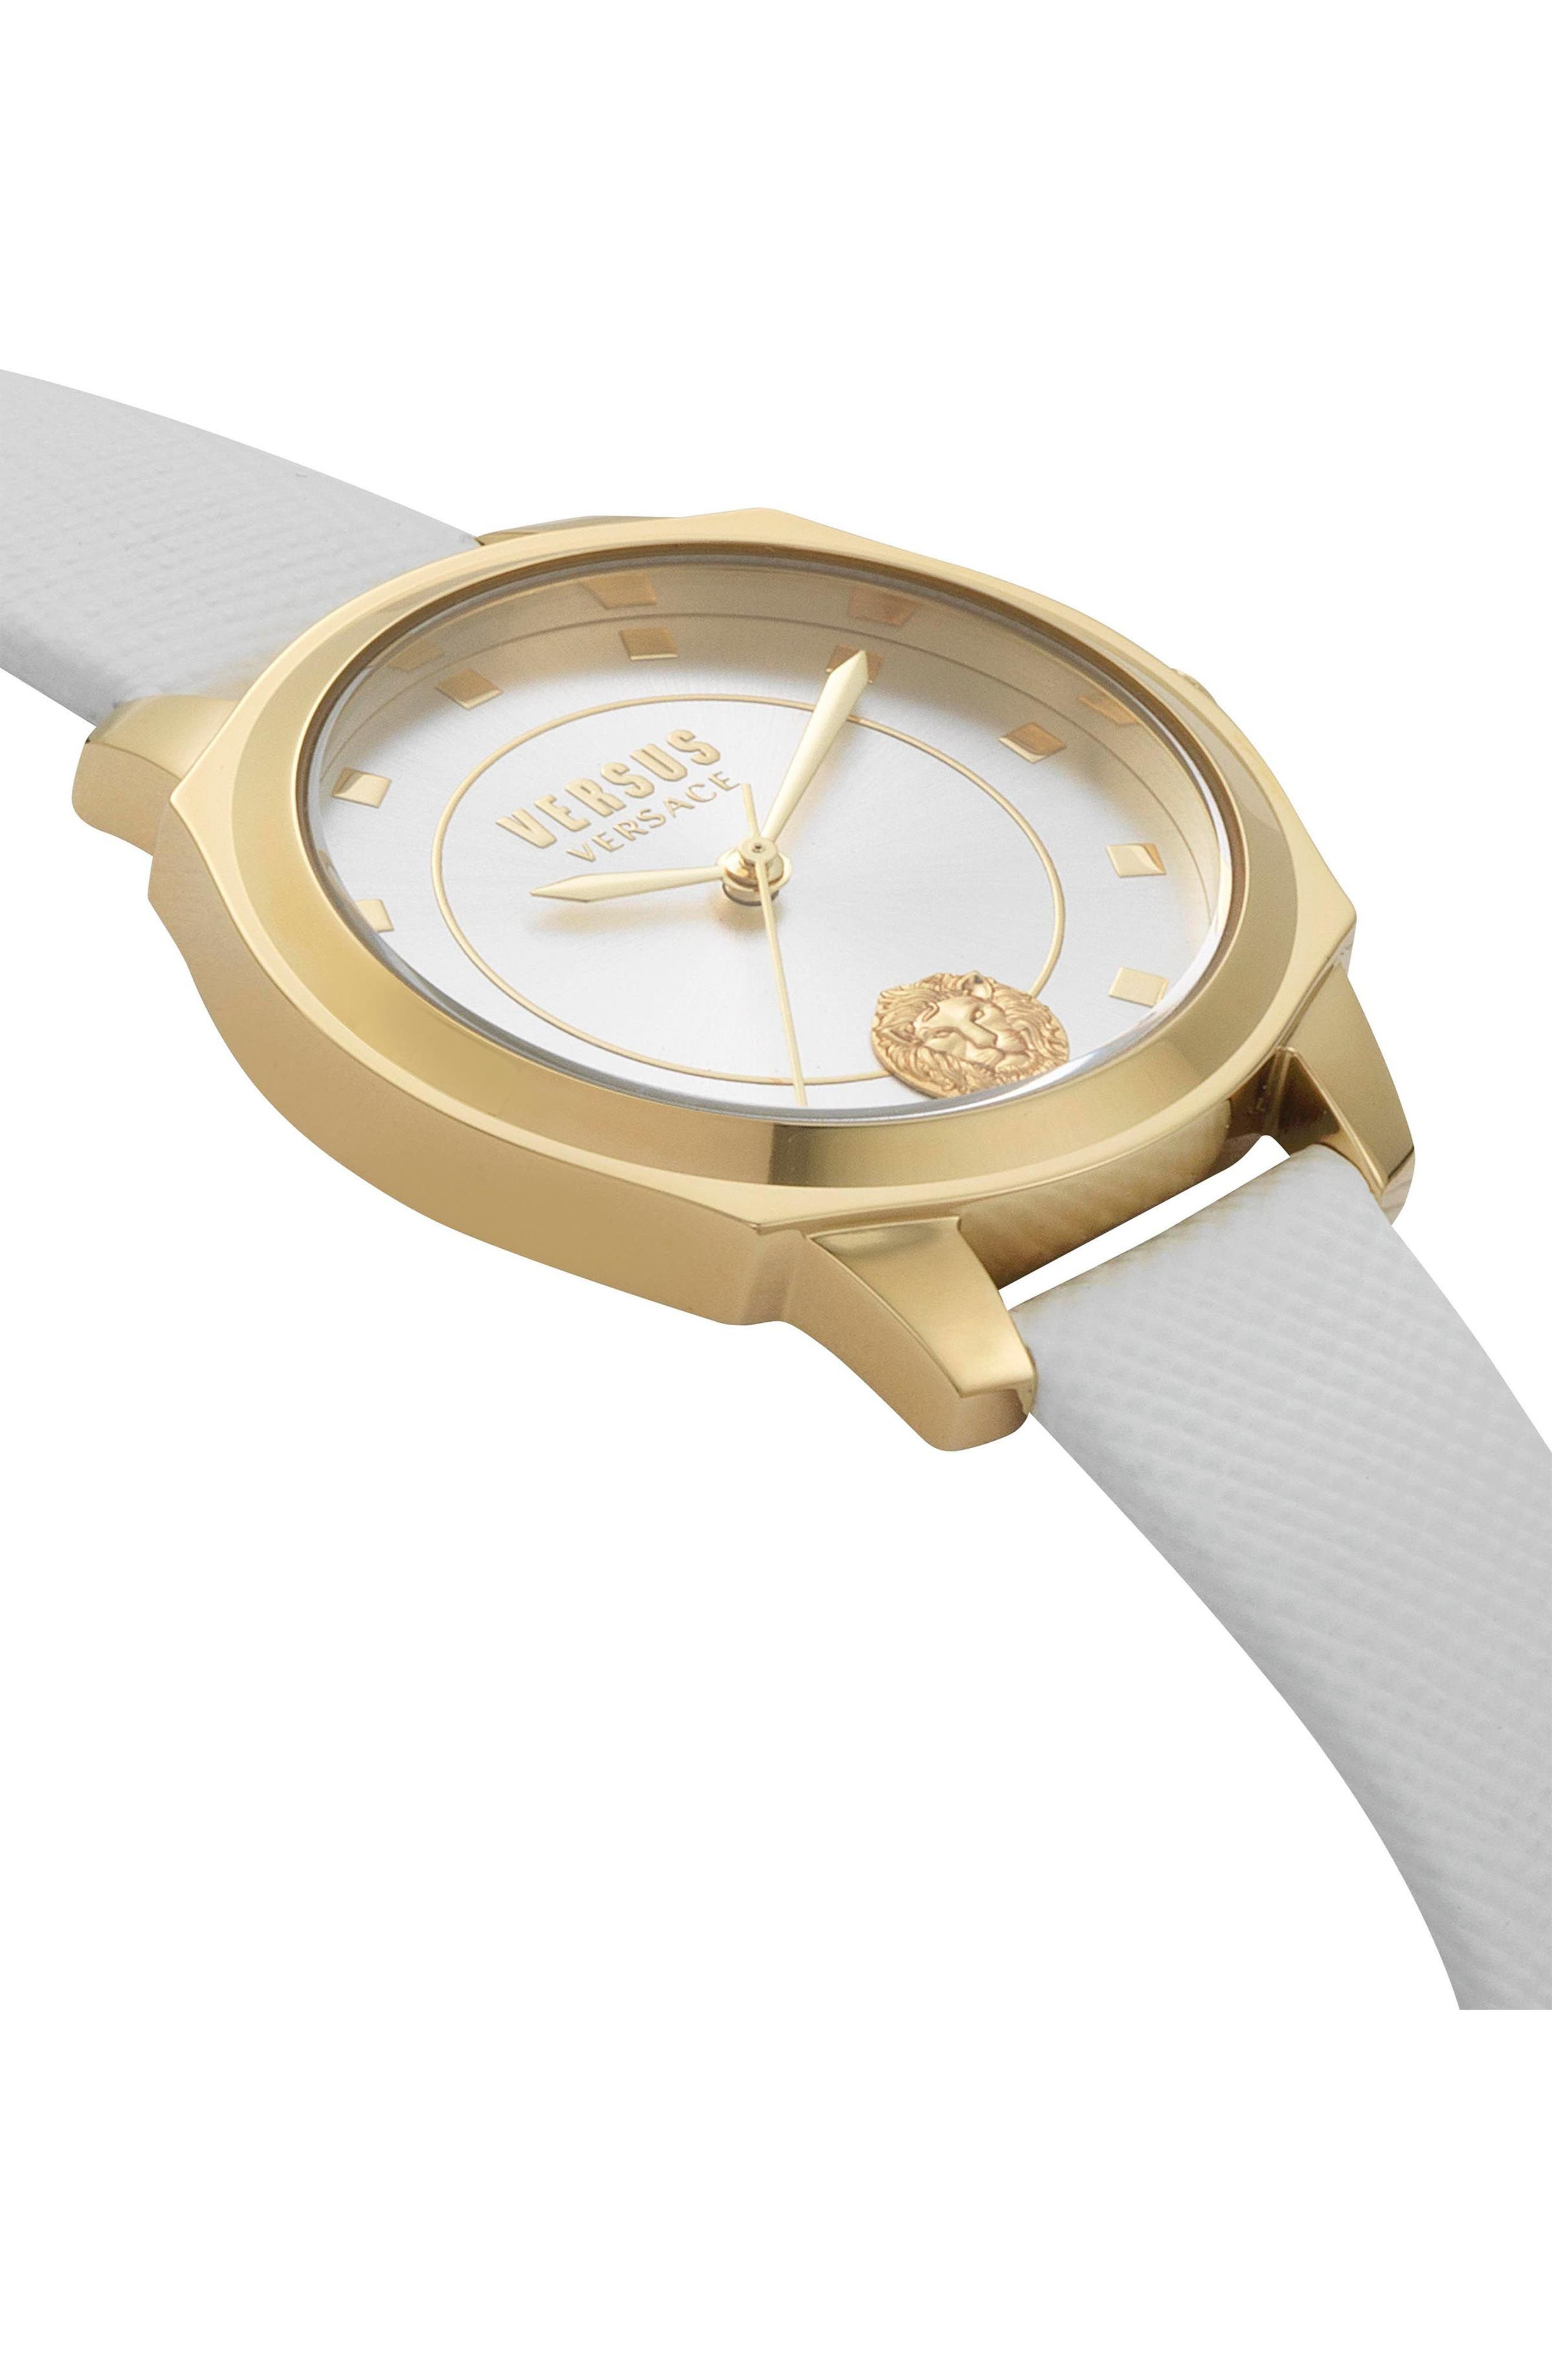 VERSUS by Versace Chelsea Leather Strap Watch, 34mm,                             Alternate thumbnail 3, color,                             White/ Silver/ Gold